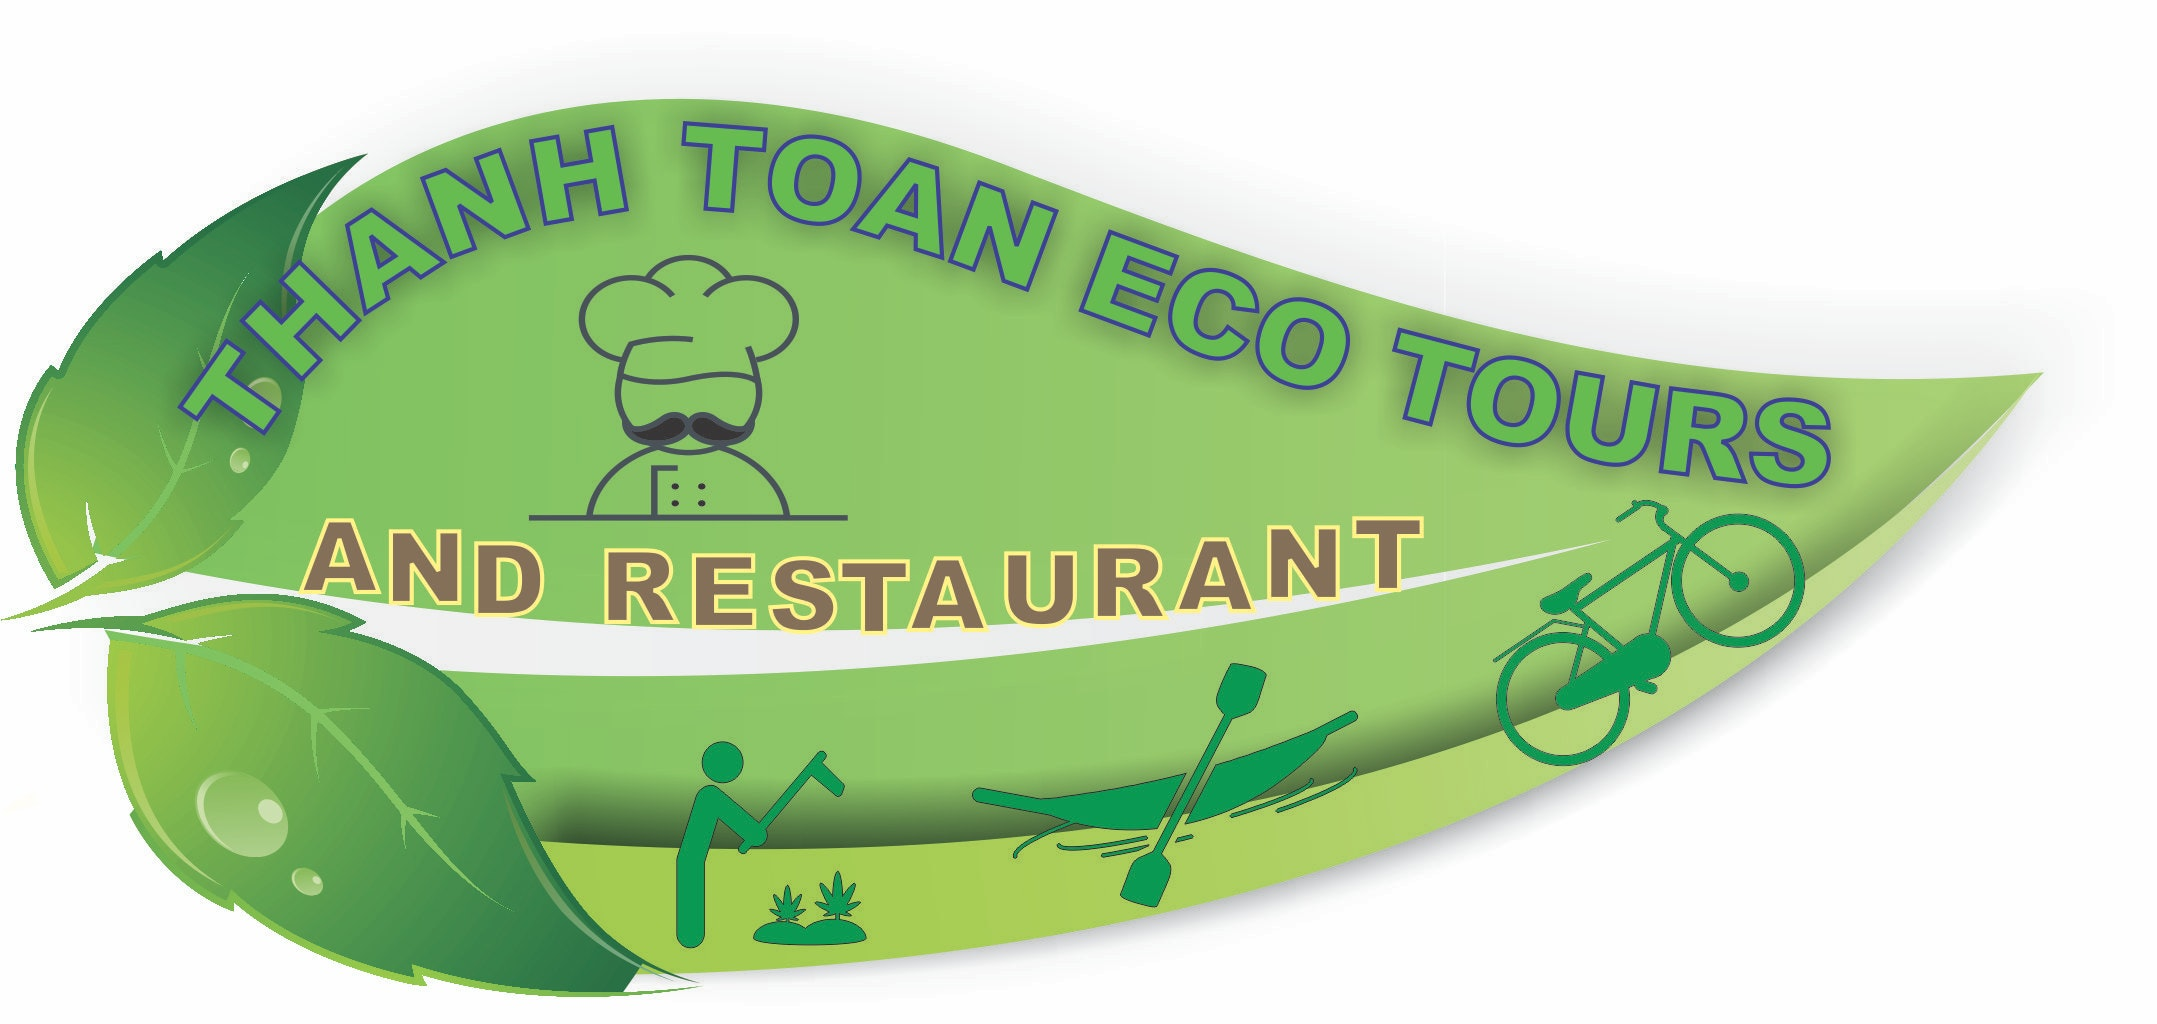 Thanh Toan Eco Tours